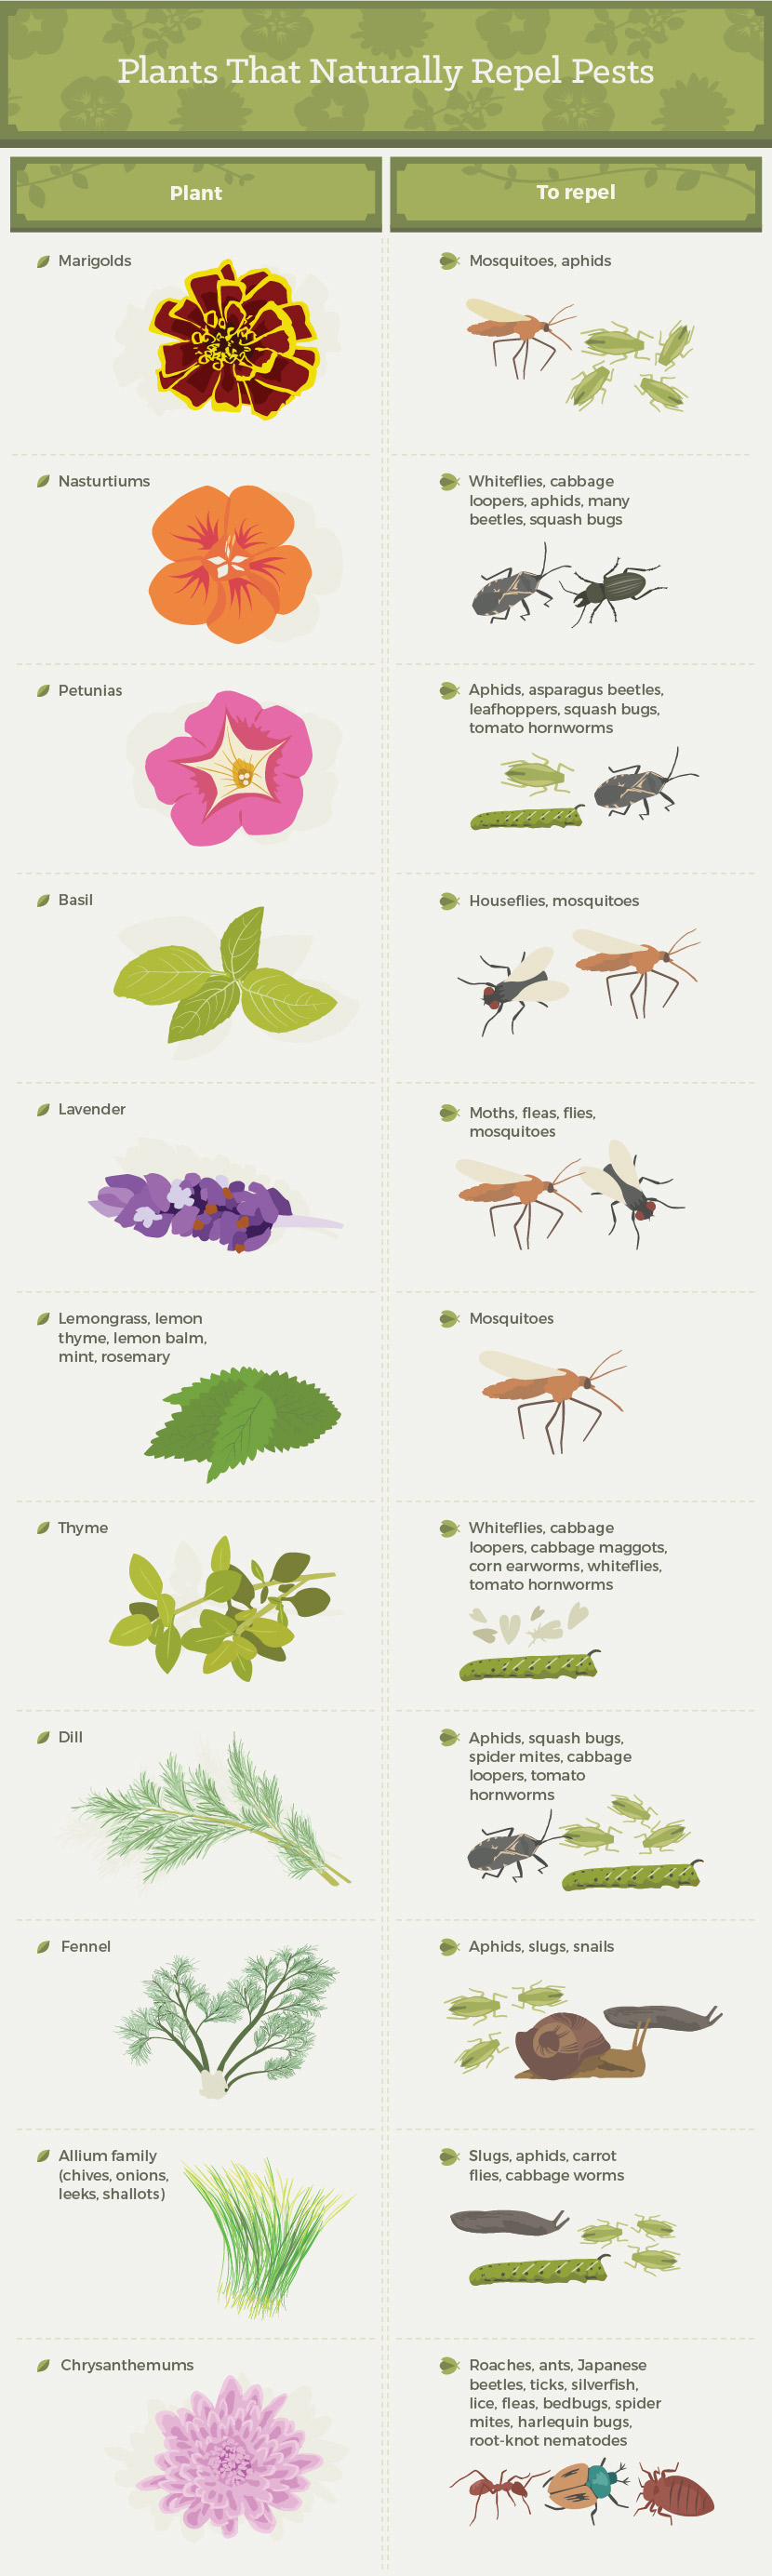 plants-that-naturally-repel-pests-003.jpg